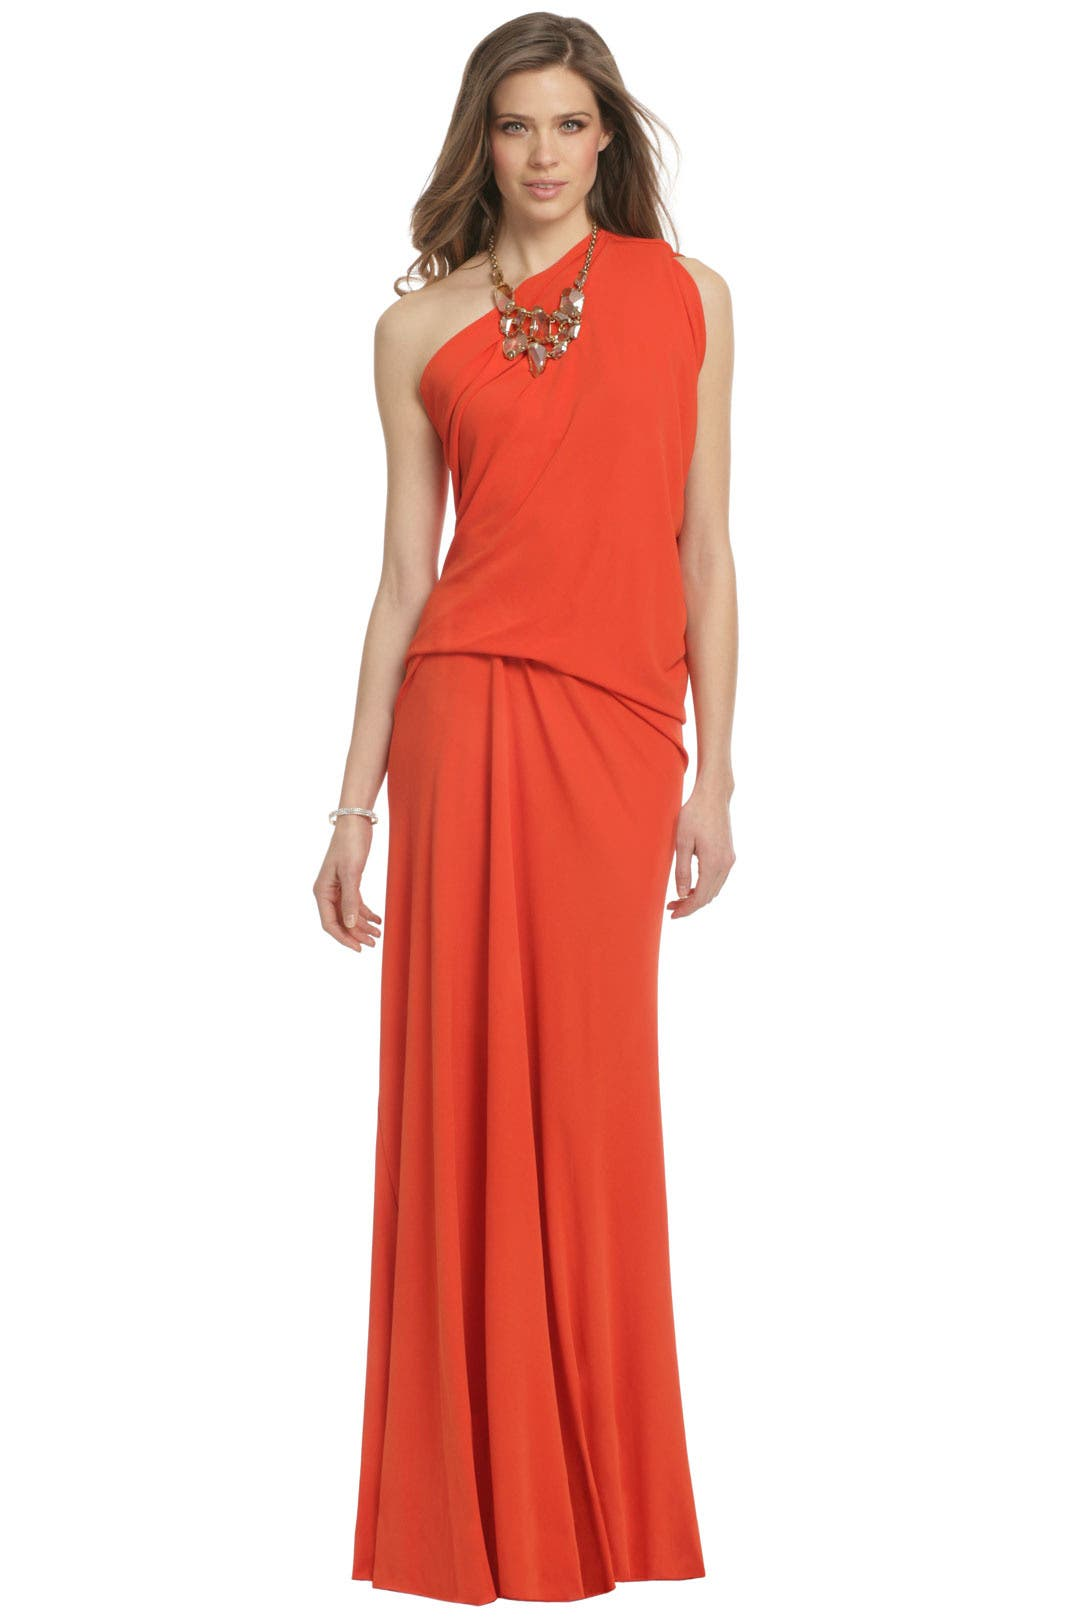 Melting Lava Gown by Plein Sud